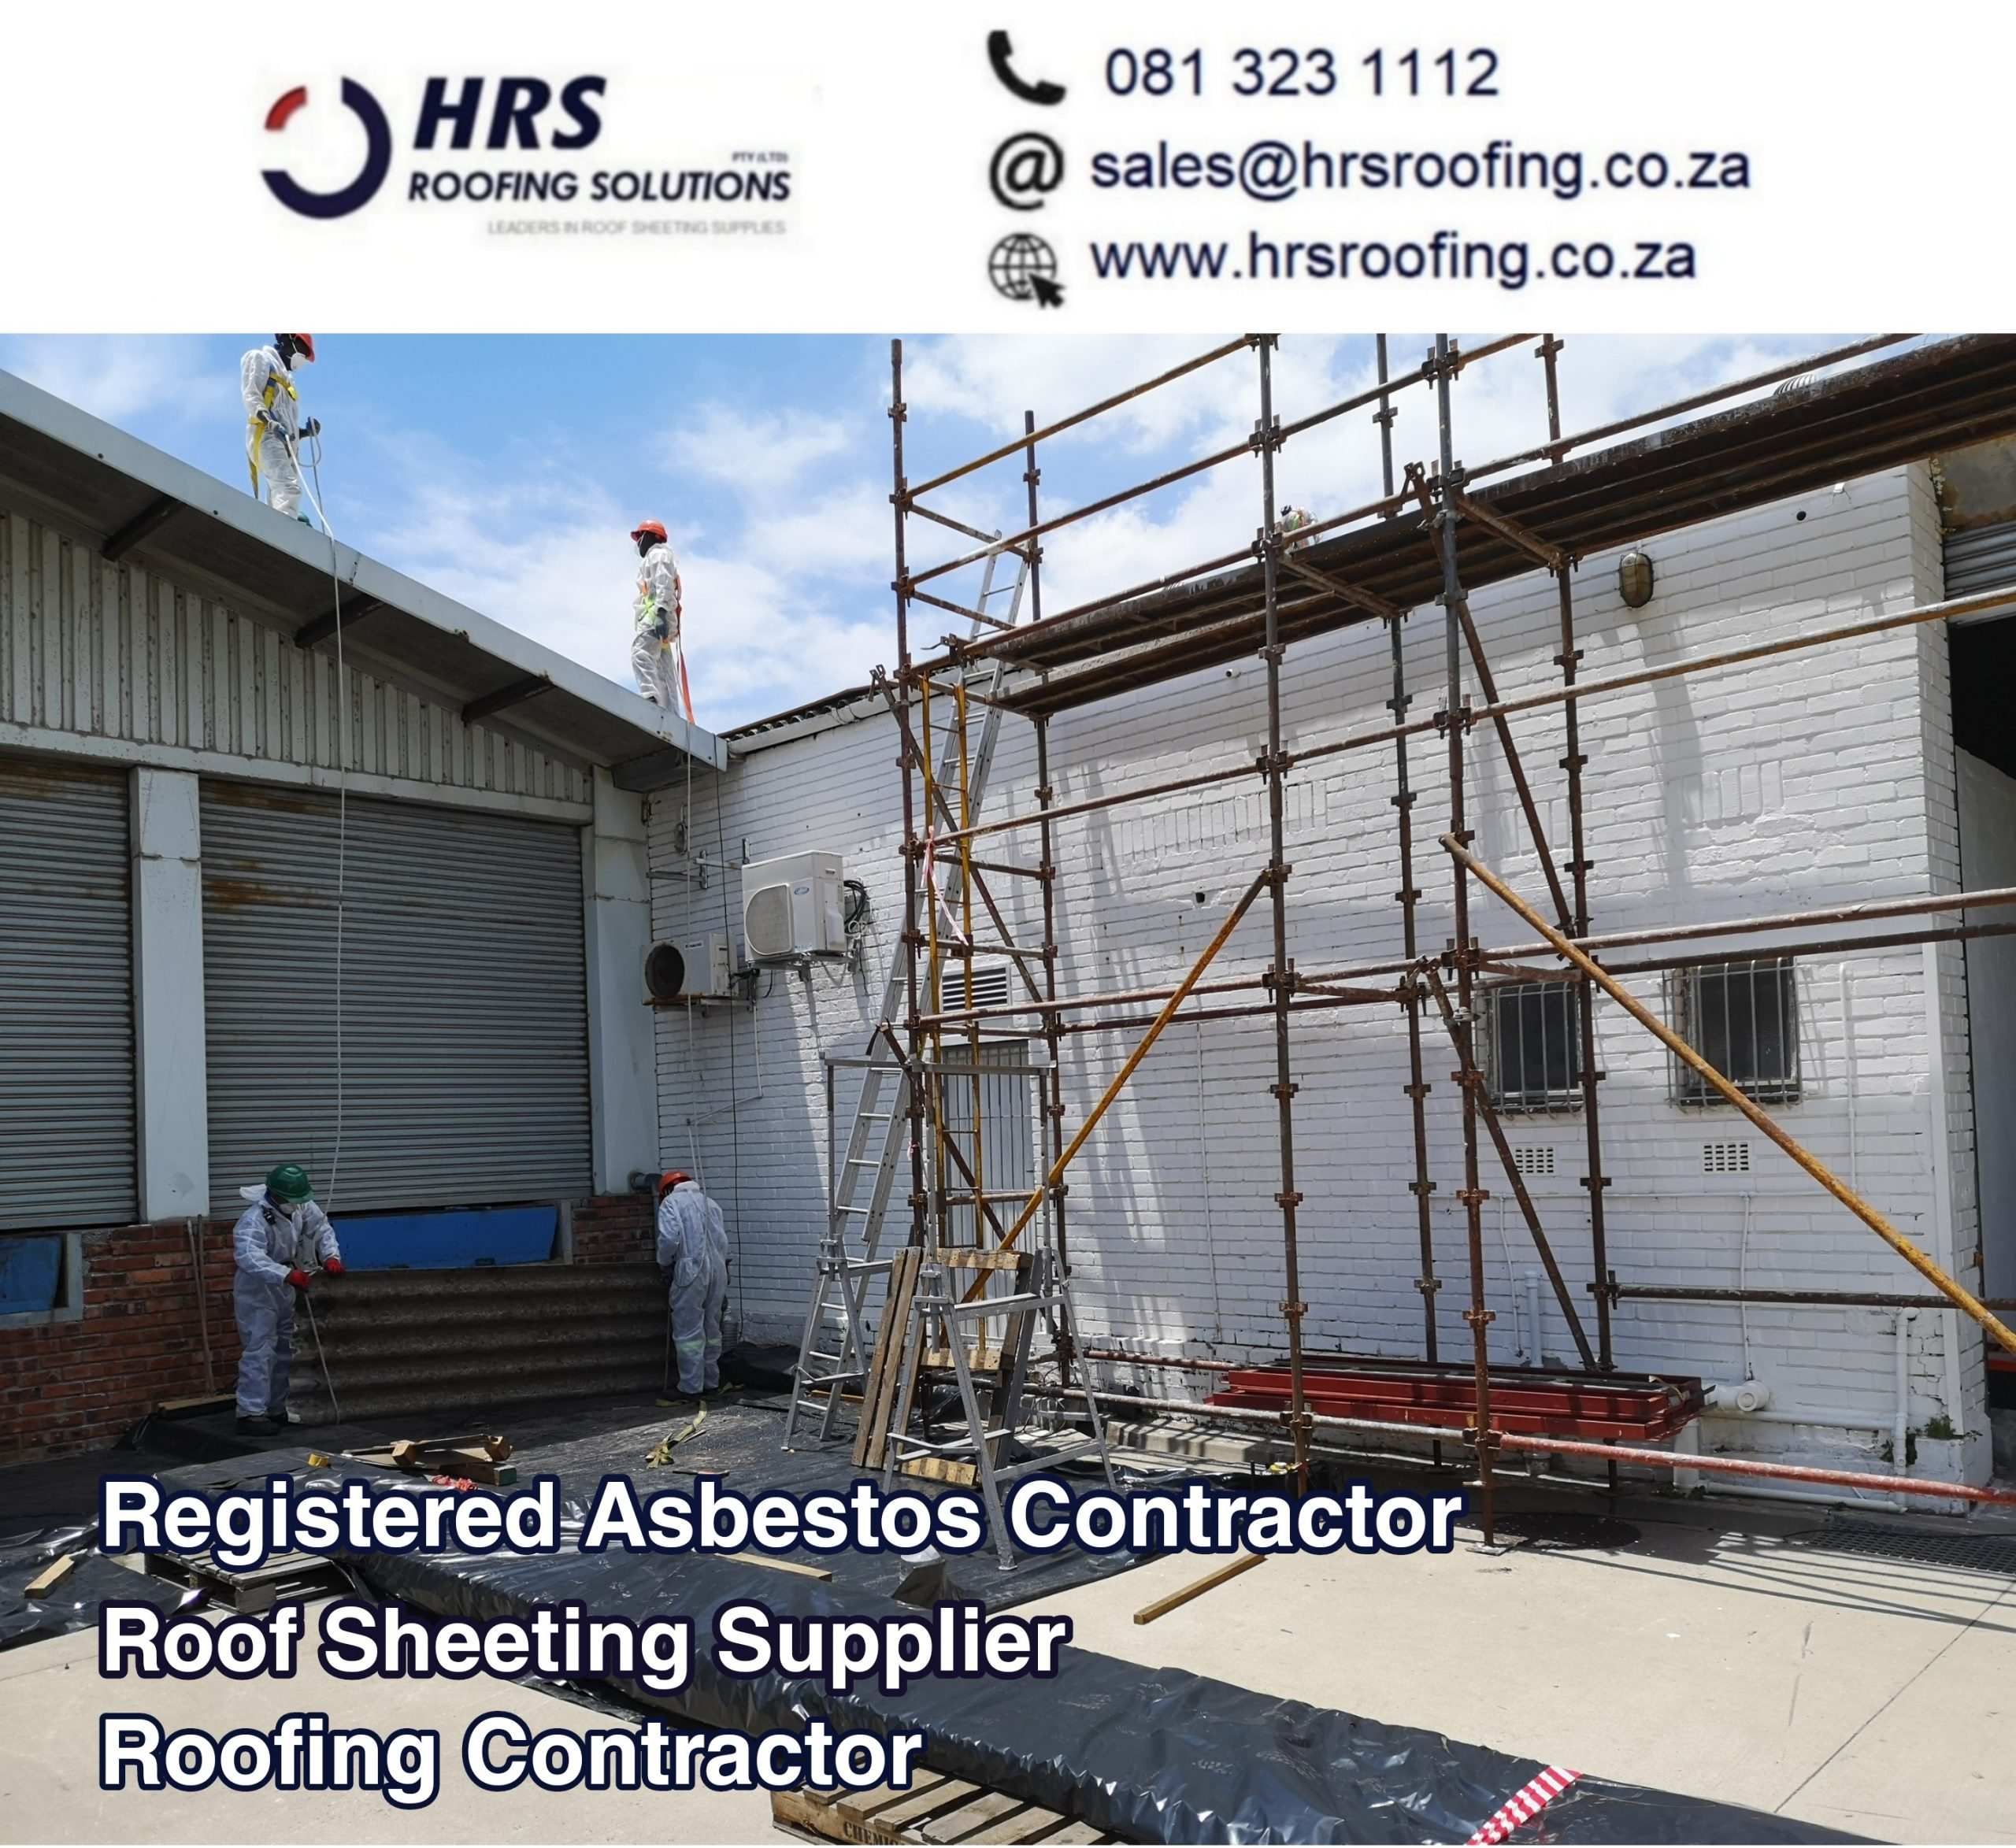 registered Asbestos Contractor hrs roofing solutions paarl scaled - Roofing Gallery